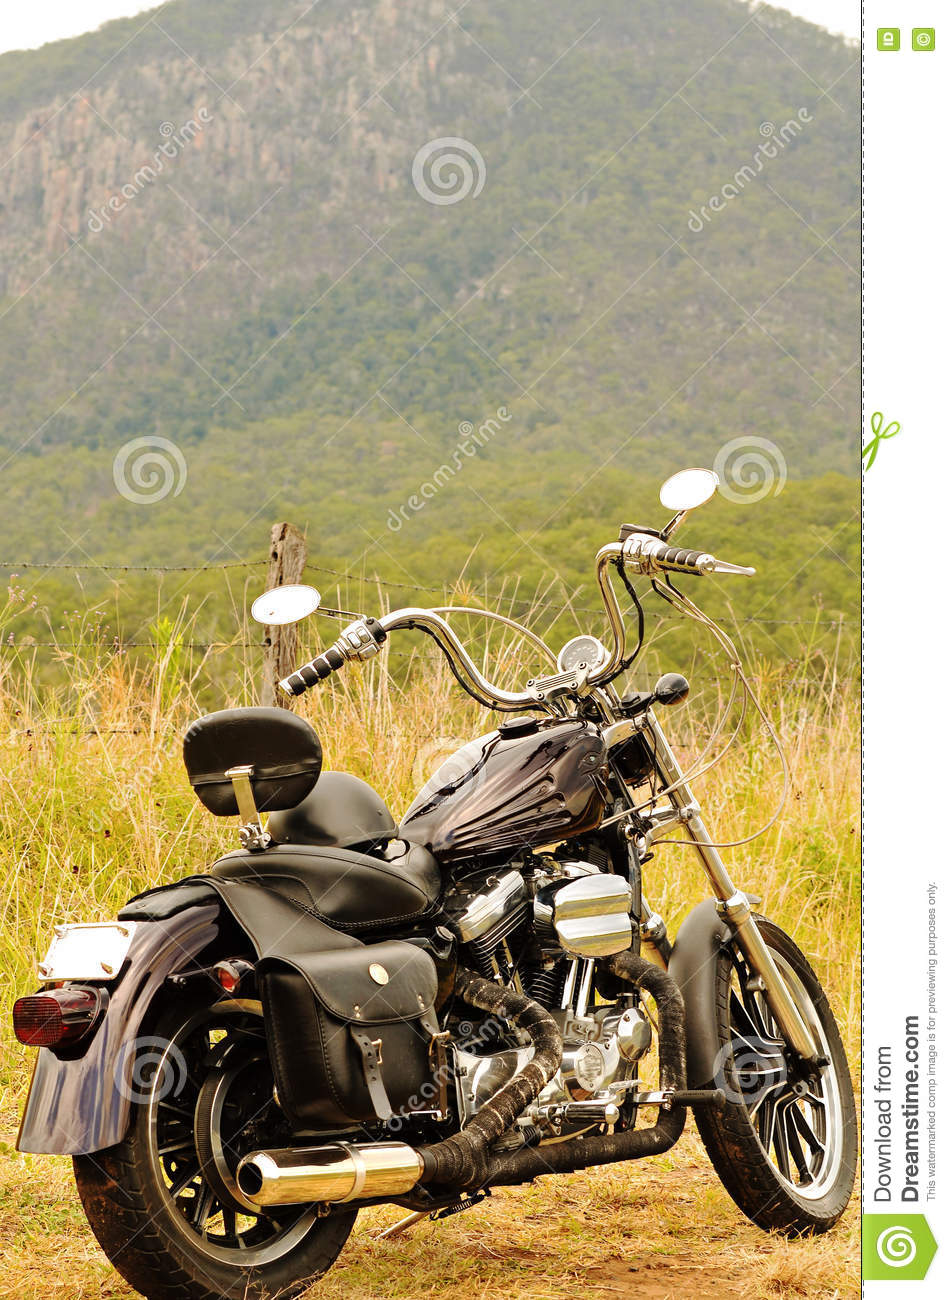 A motorbike on a road trip summer holiday touring outback Australia